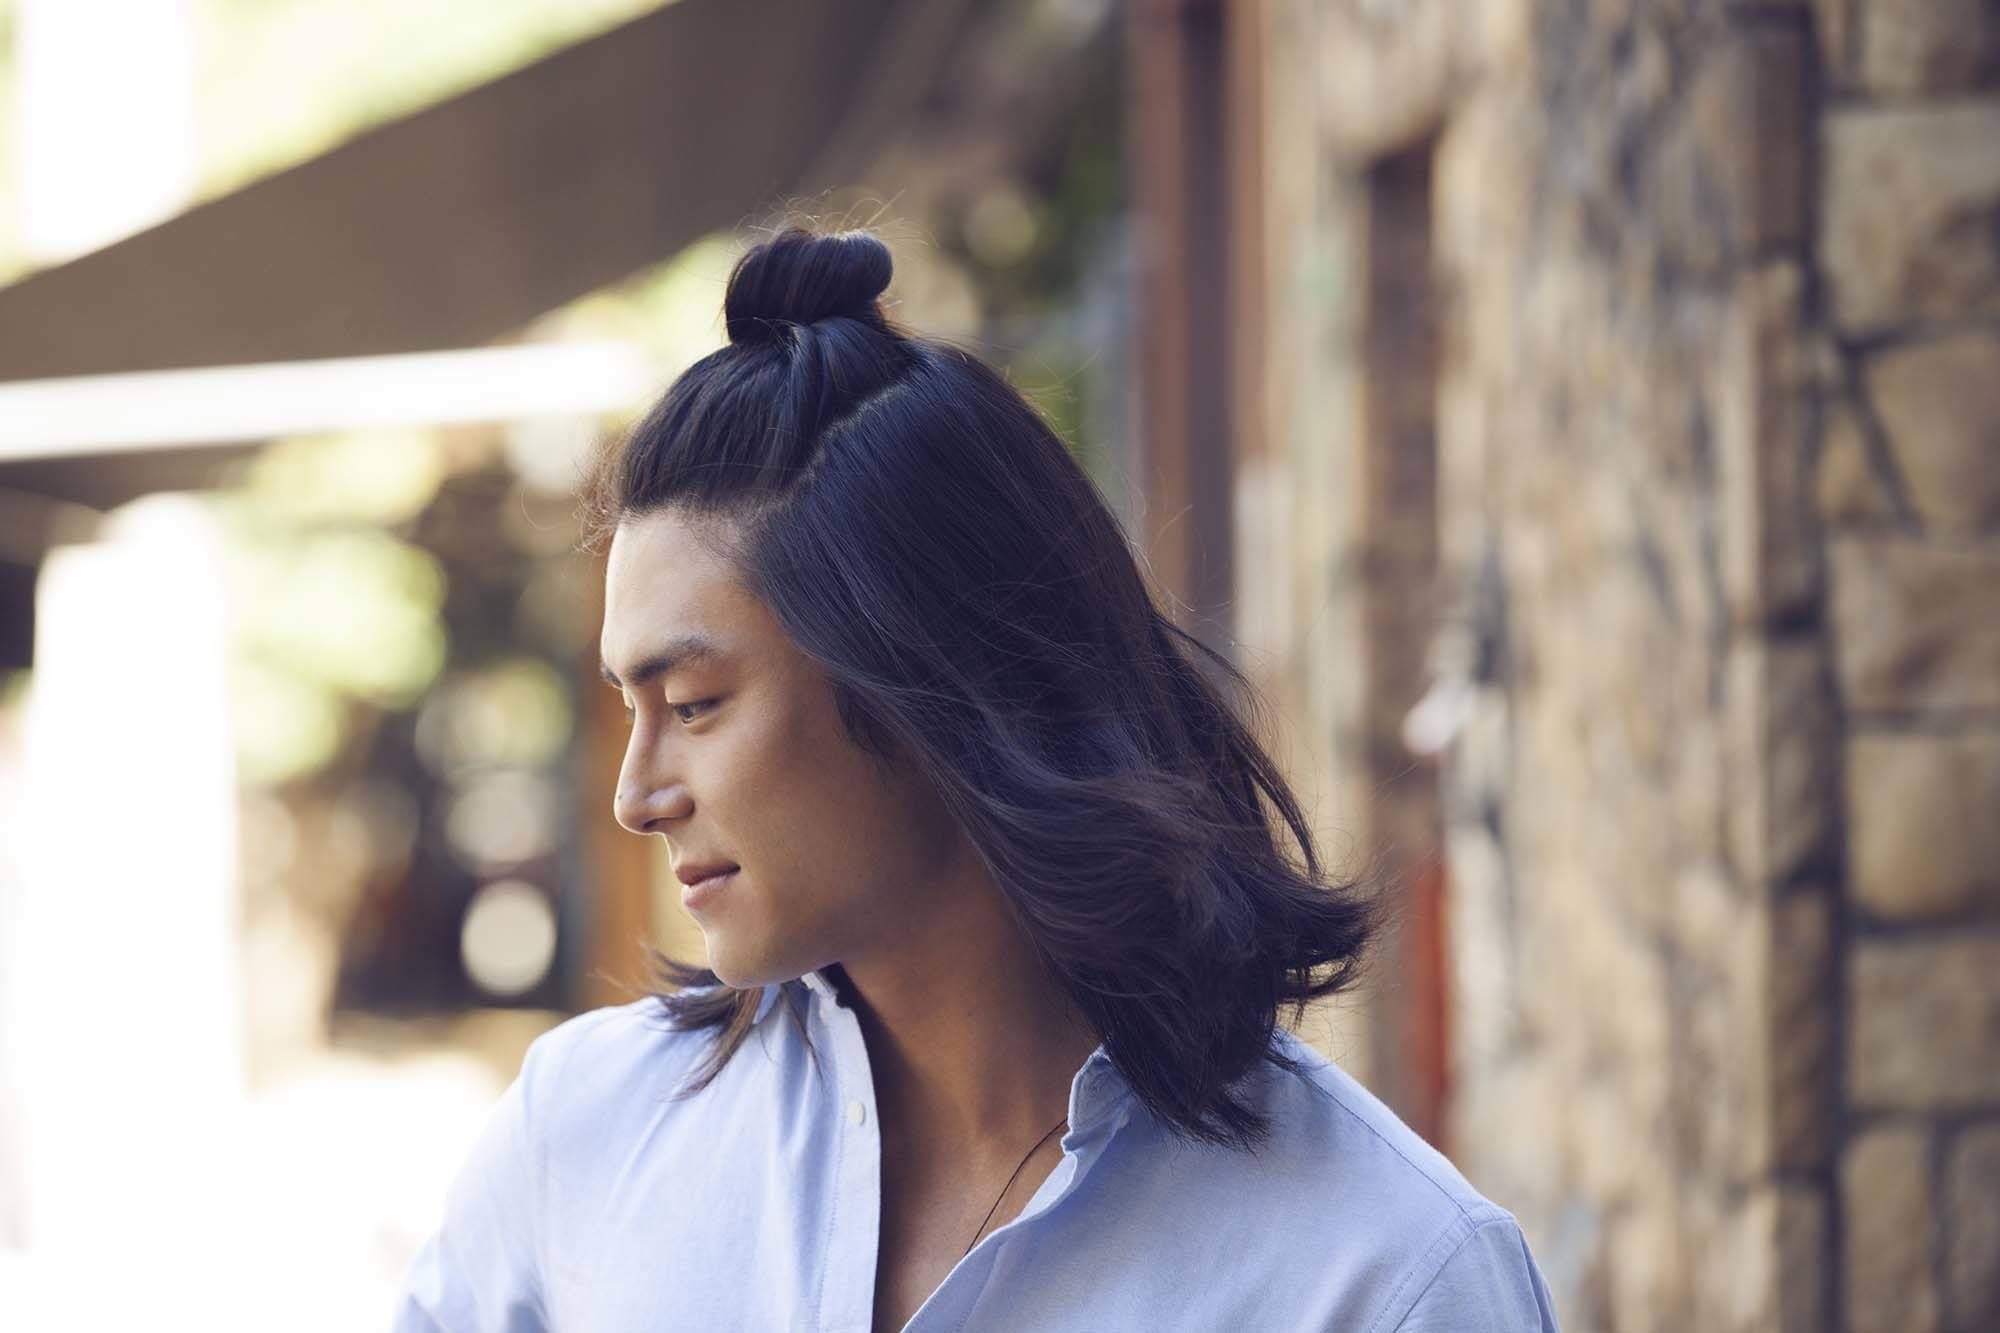 Top Knot Men: Male Model With Half Up Man Bun Hairstyle With Blue Shirt